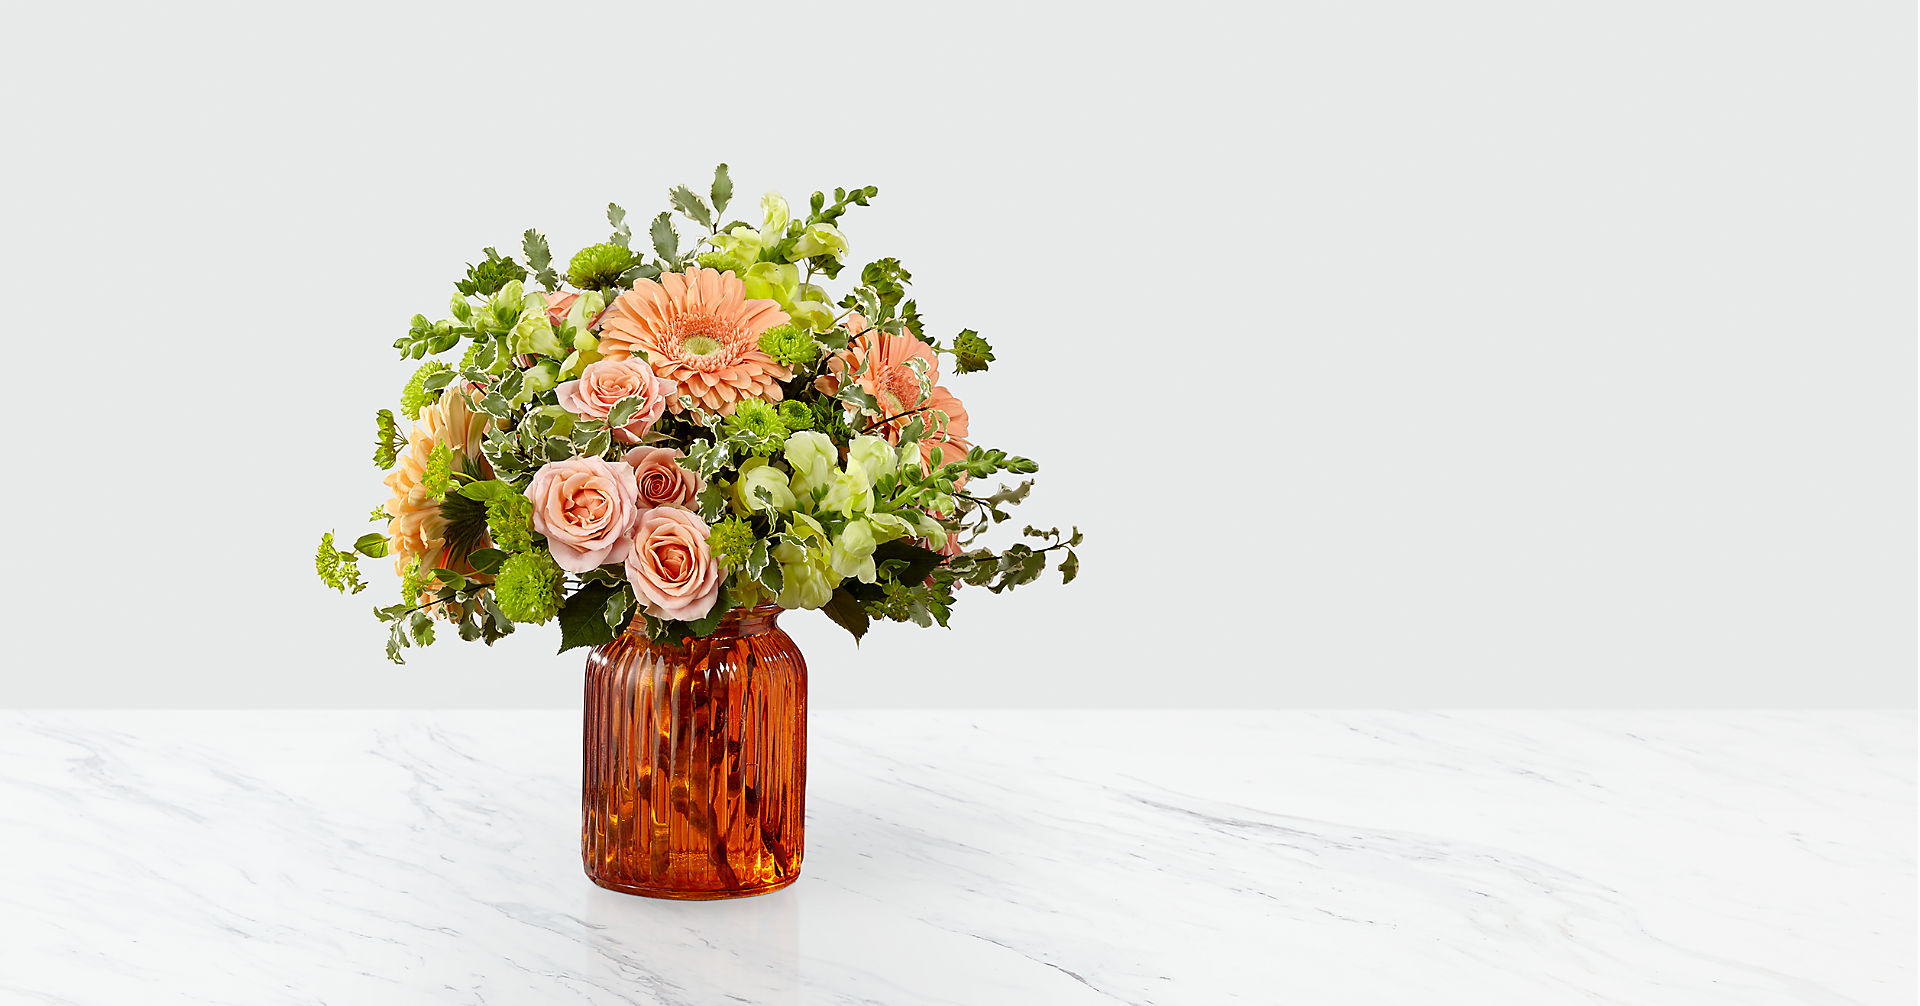 Peachy Keen™ Bouquet by FTD® - Image 1 Of 2